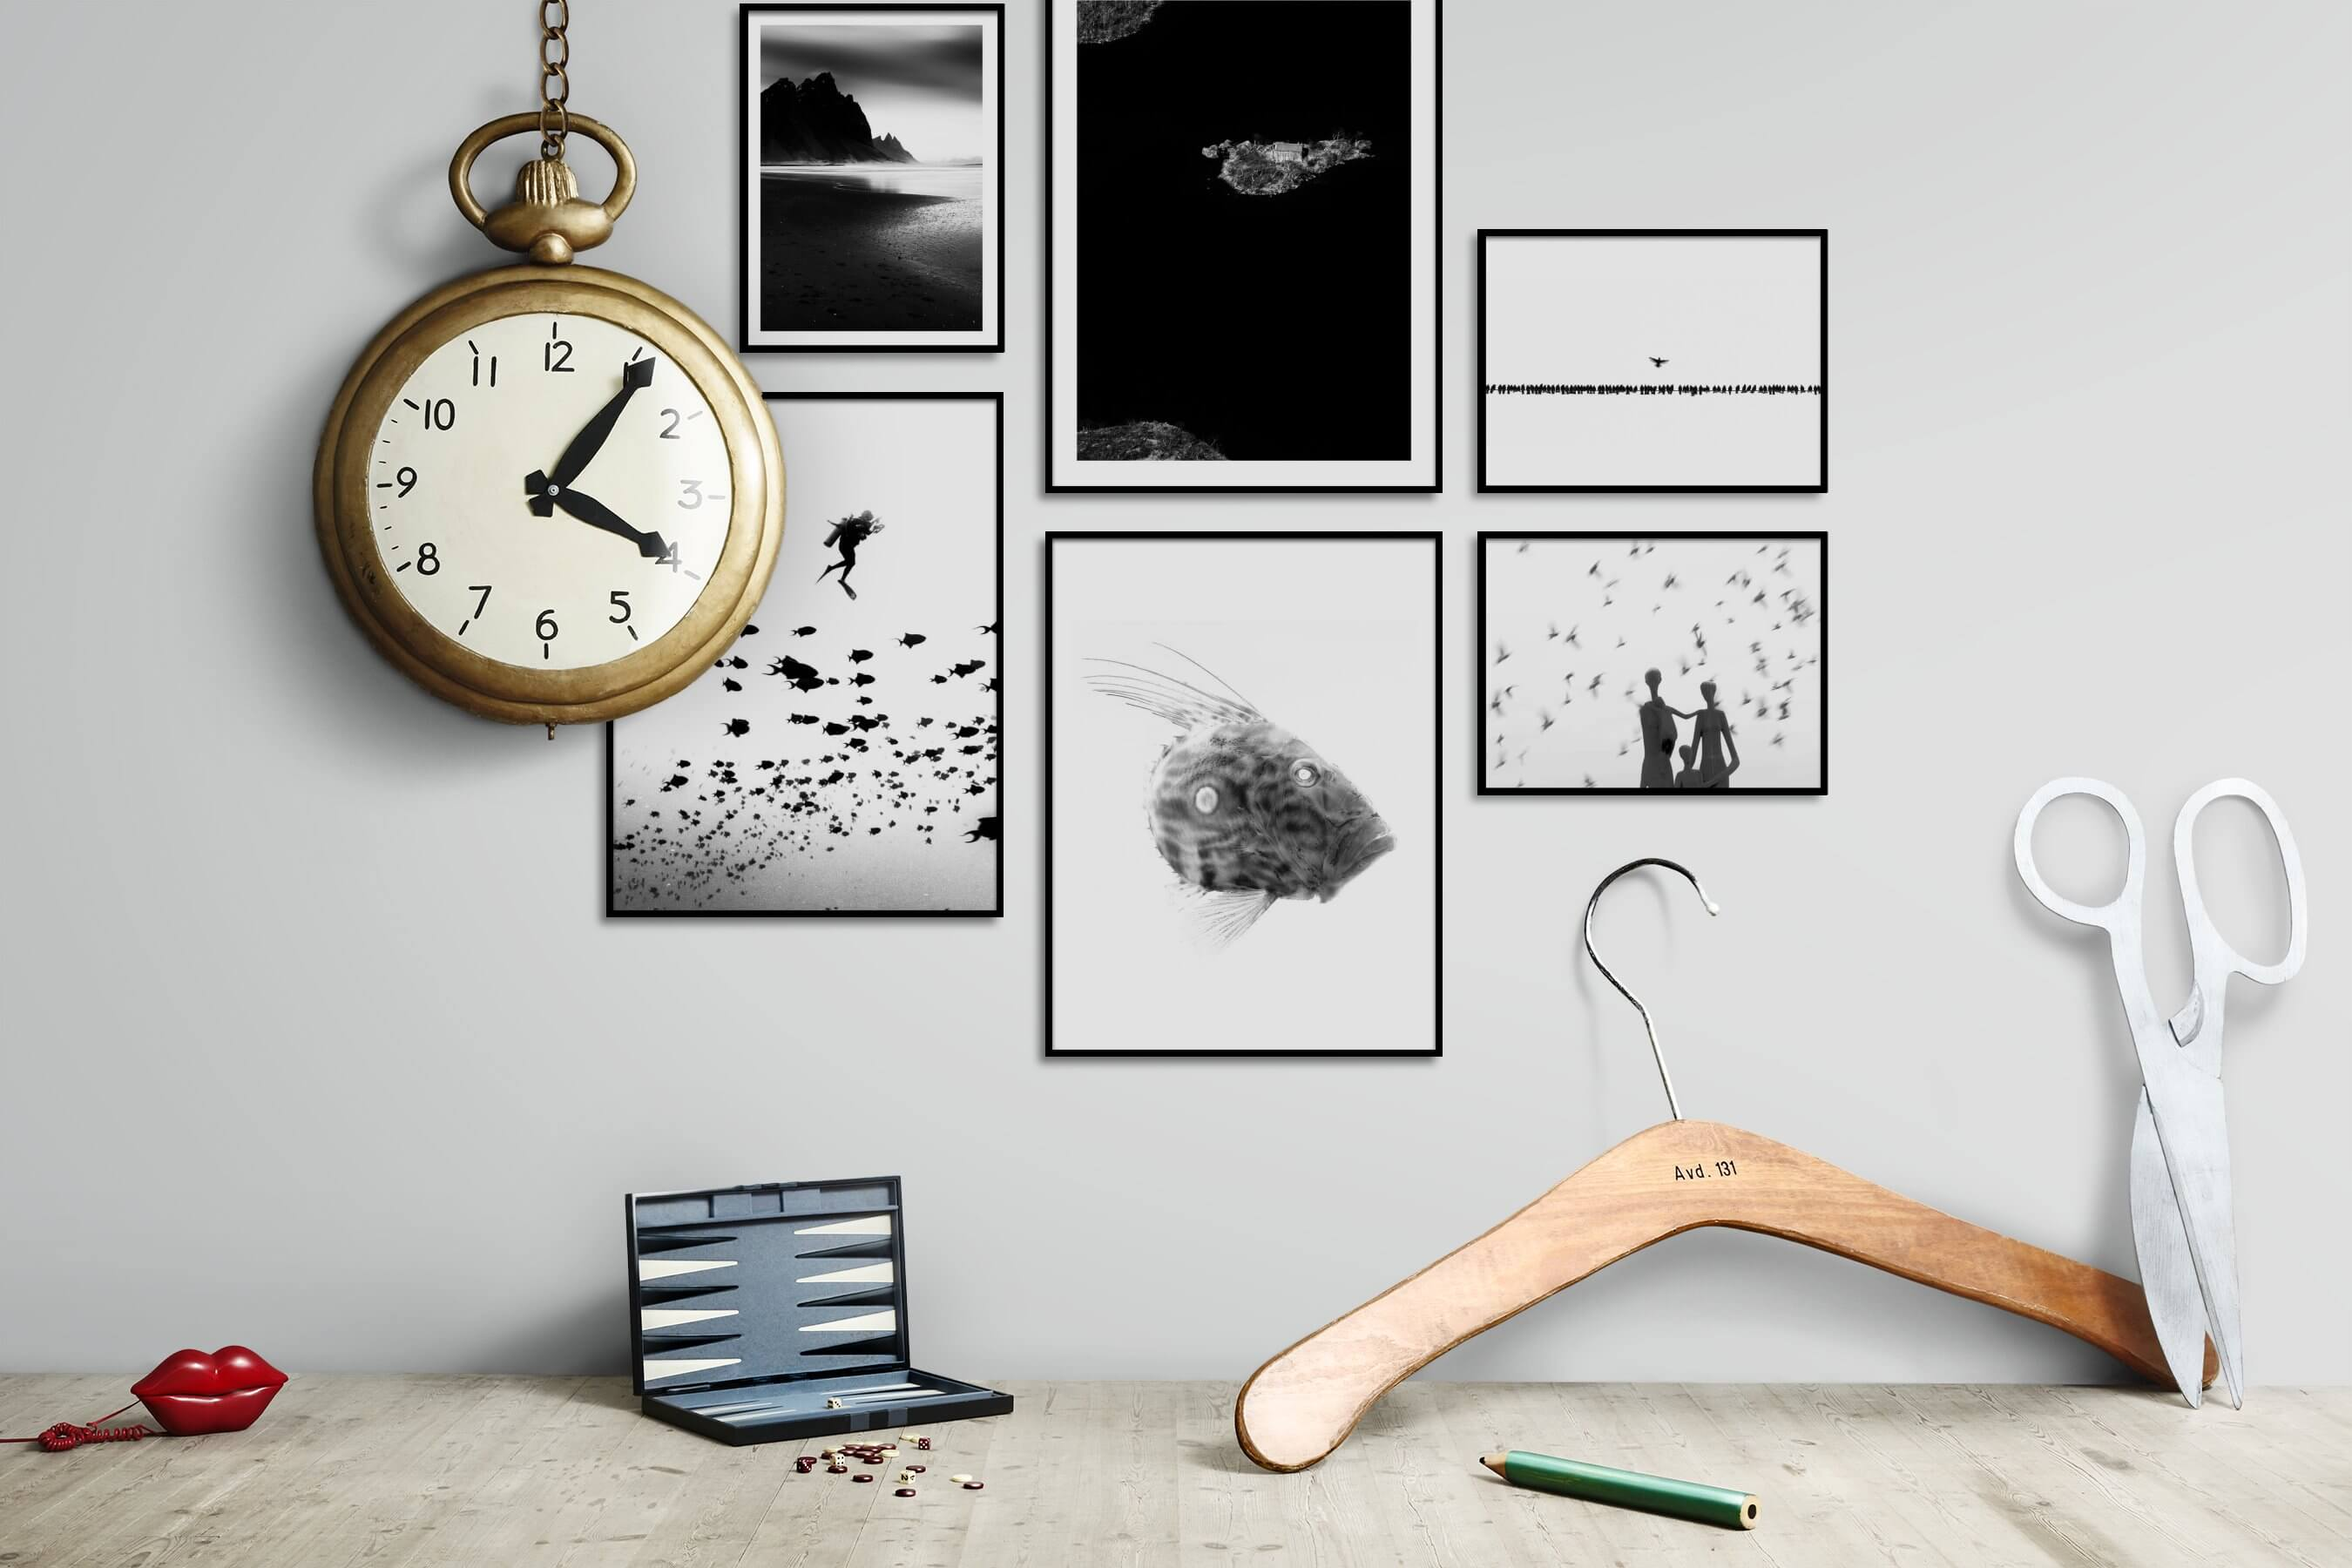 Gallery wall idea with six framed pictures arranged on a wall depicting Black & White, Beach & Water, For the Minimalist, Country Life, Bright Tones, Animals, and Artsy